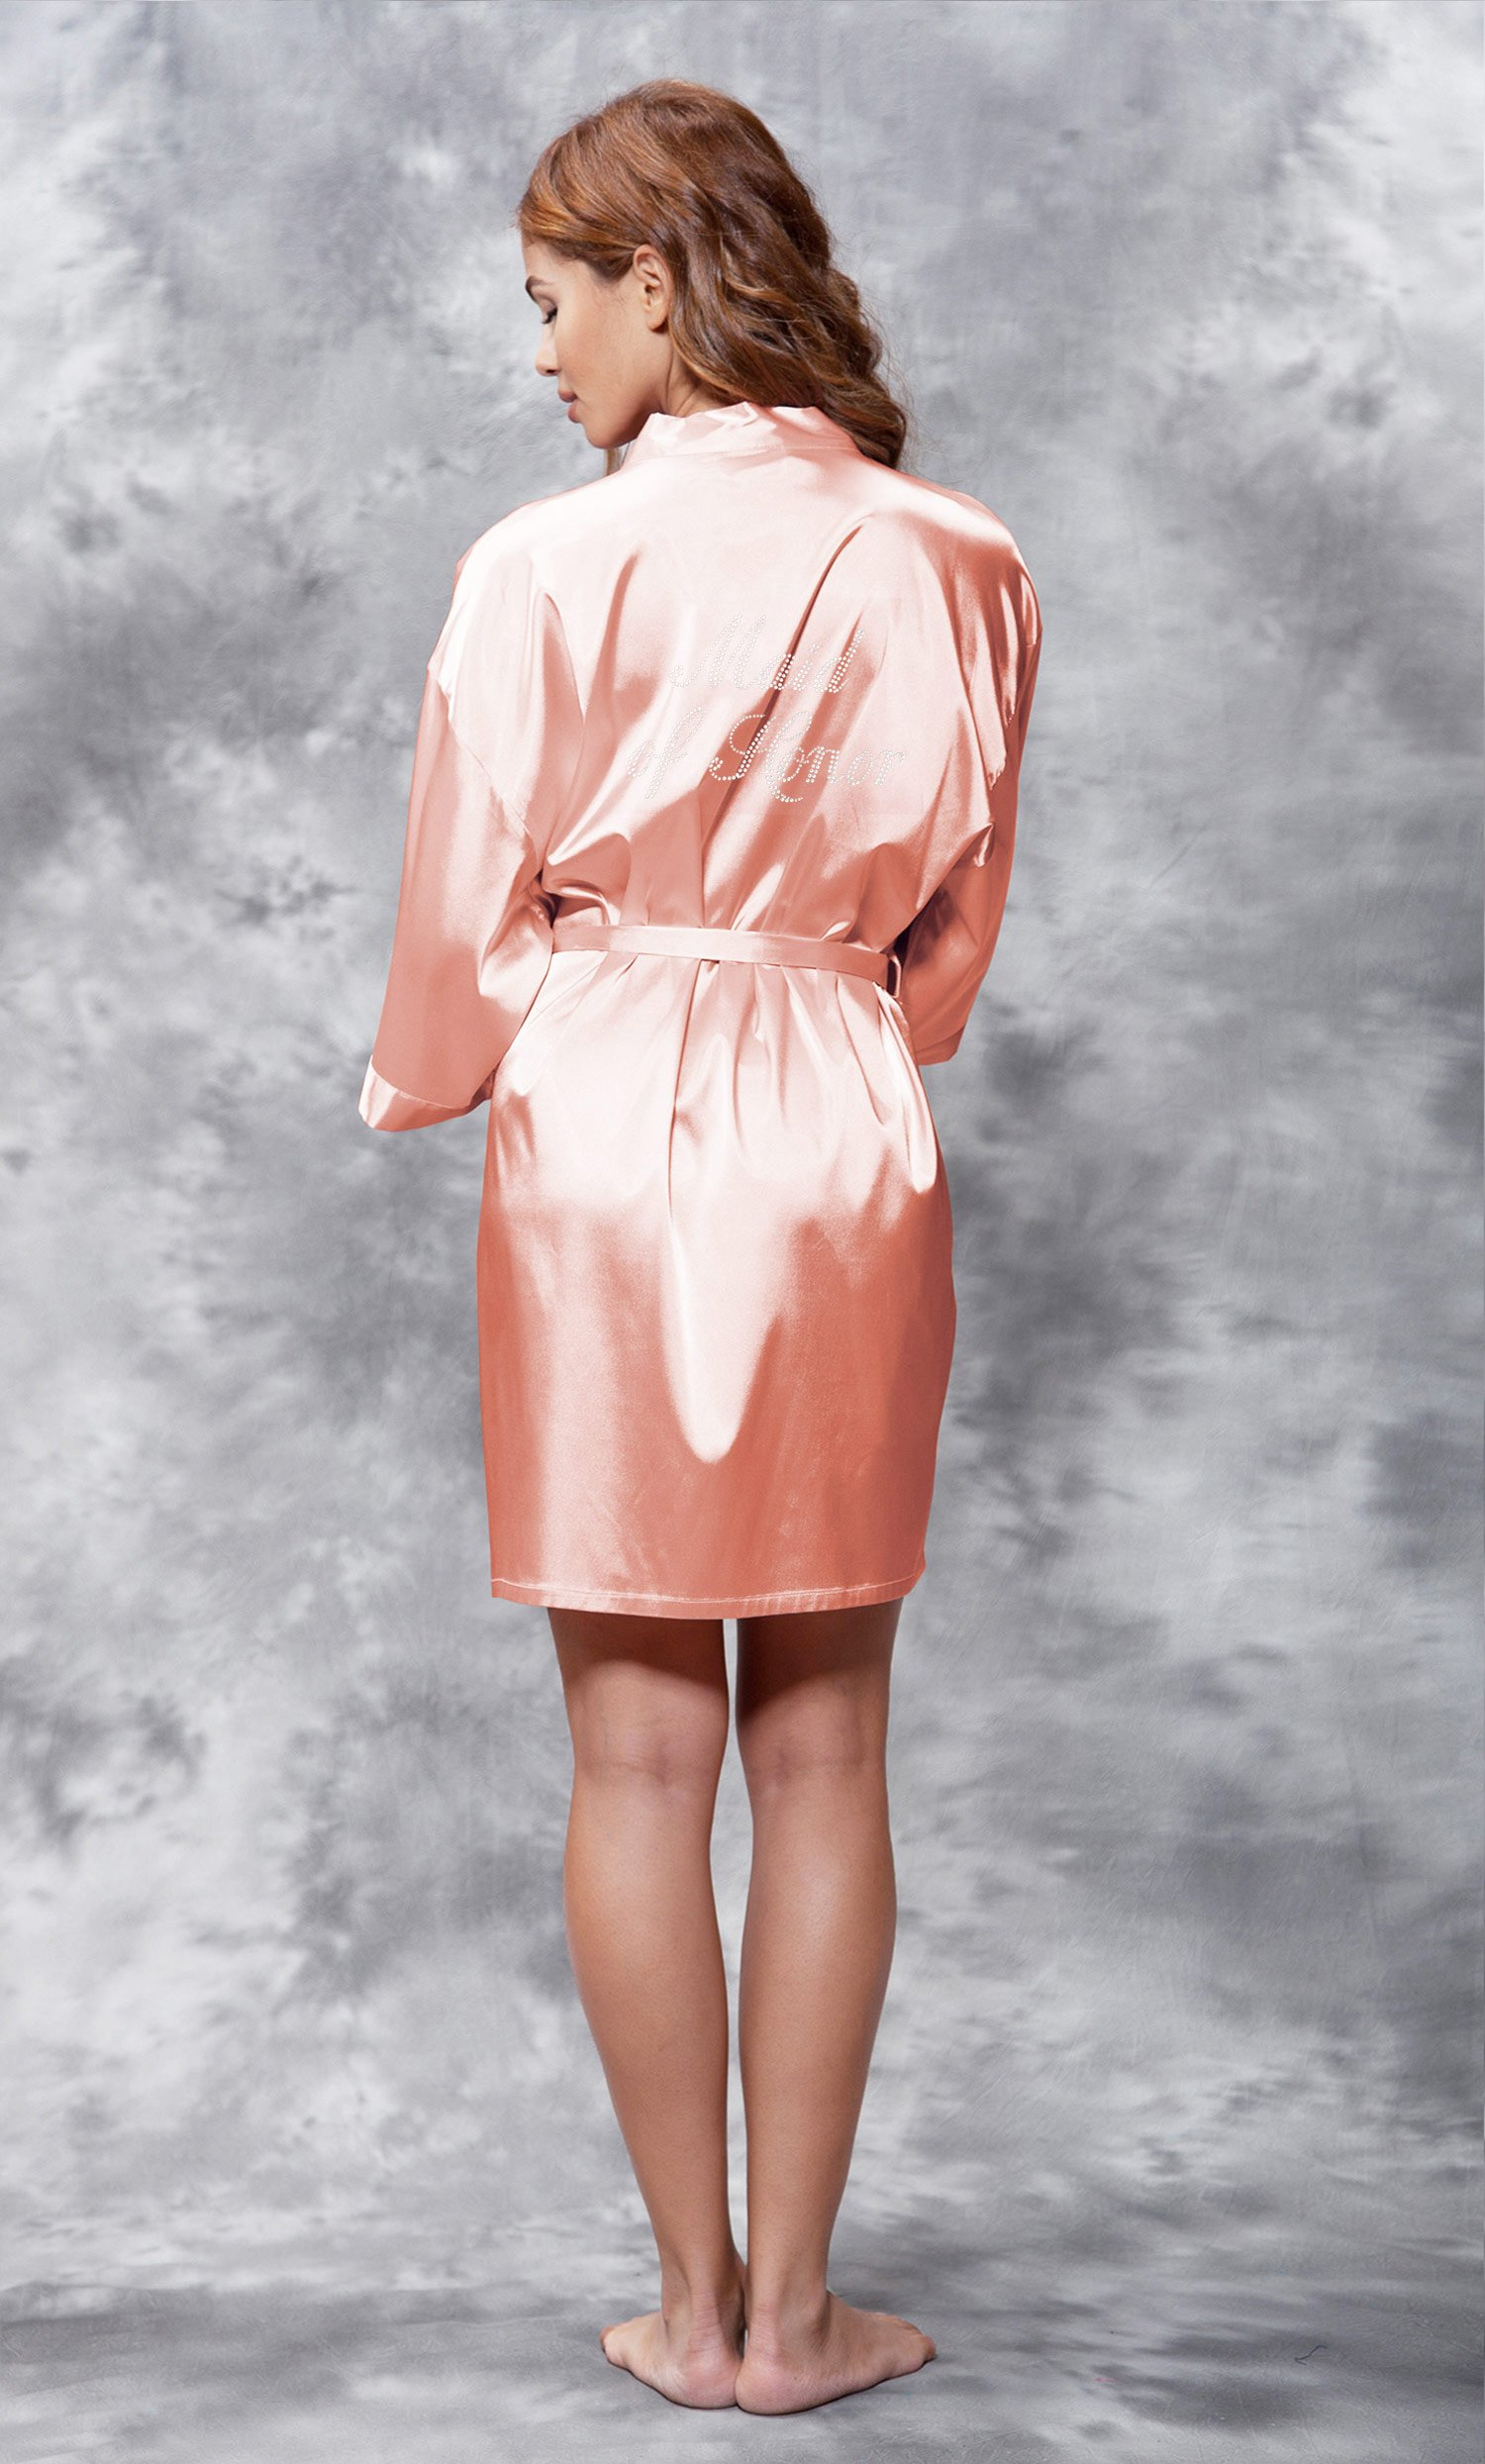 Maid of Honor Clear Rhinestone Satin Kimono Peach Short Robe-Robemart.com